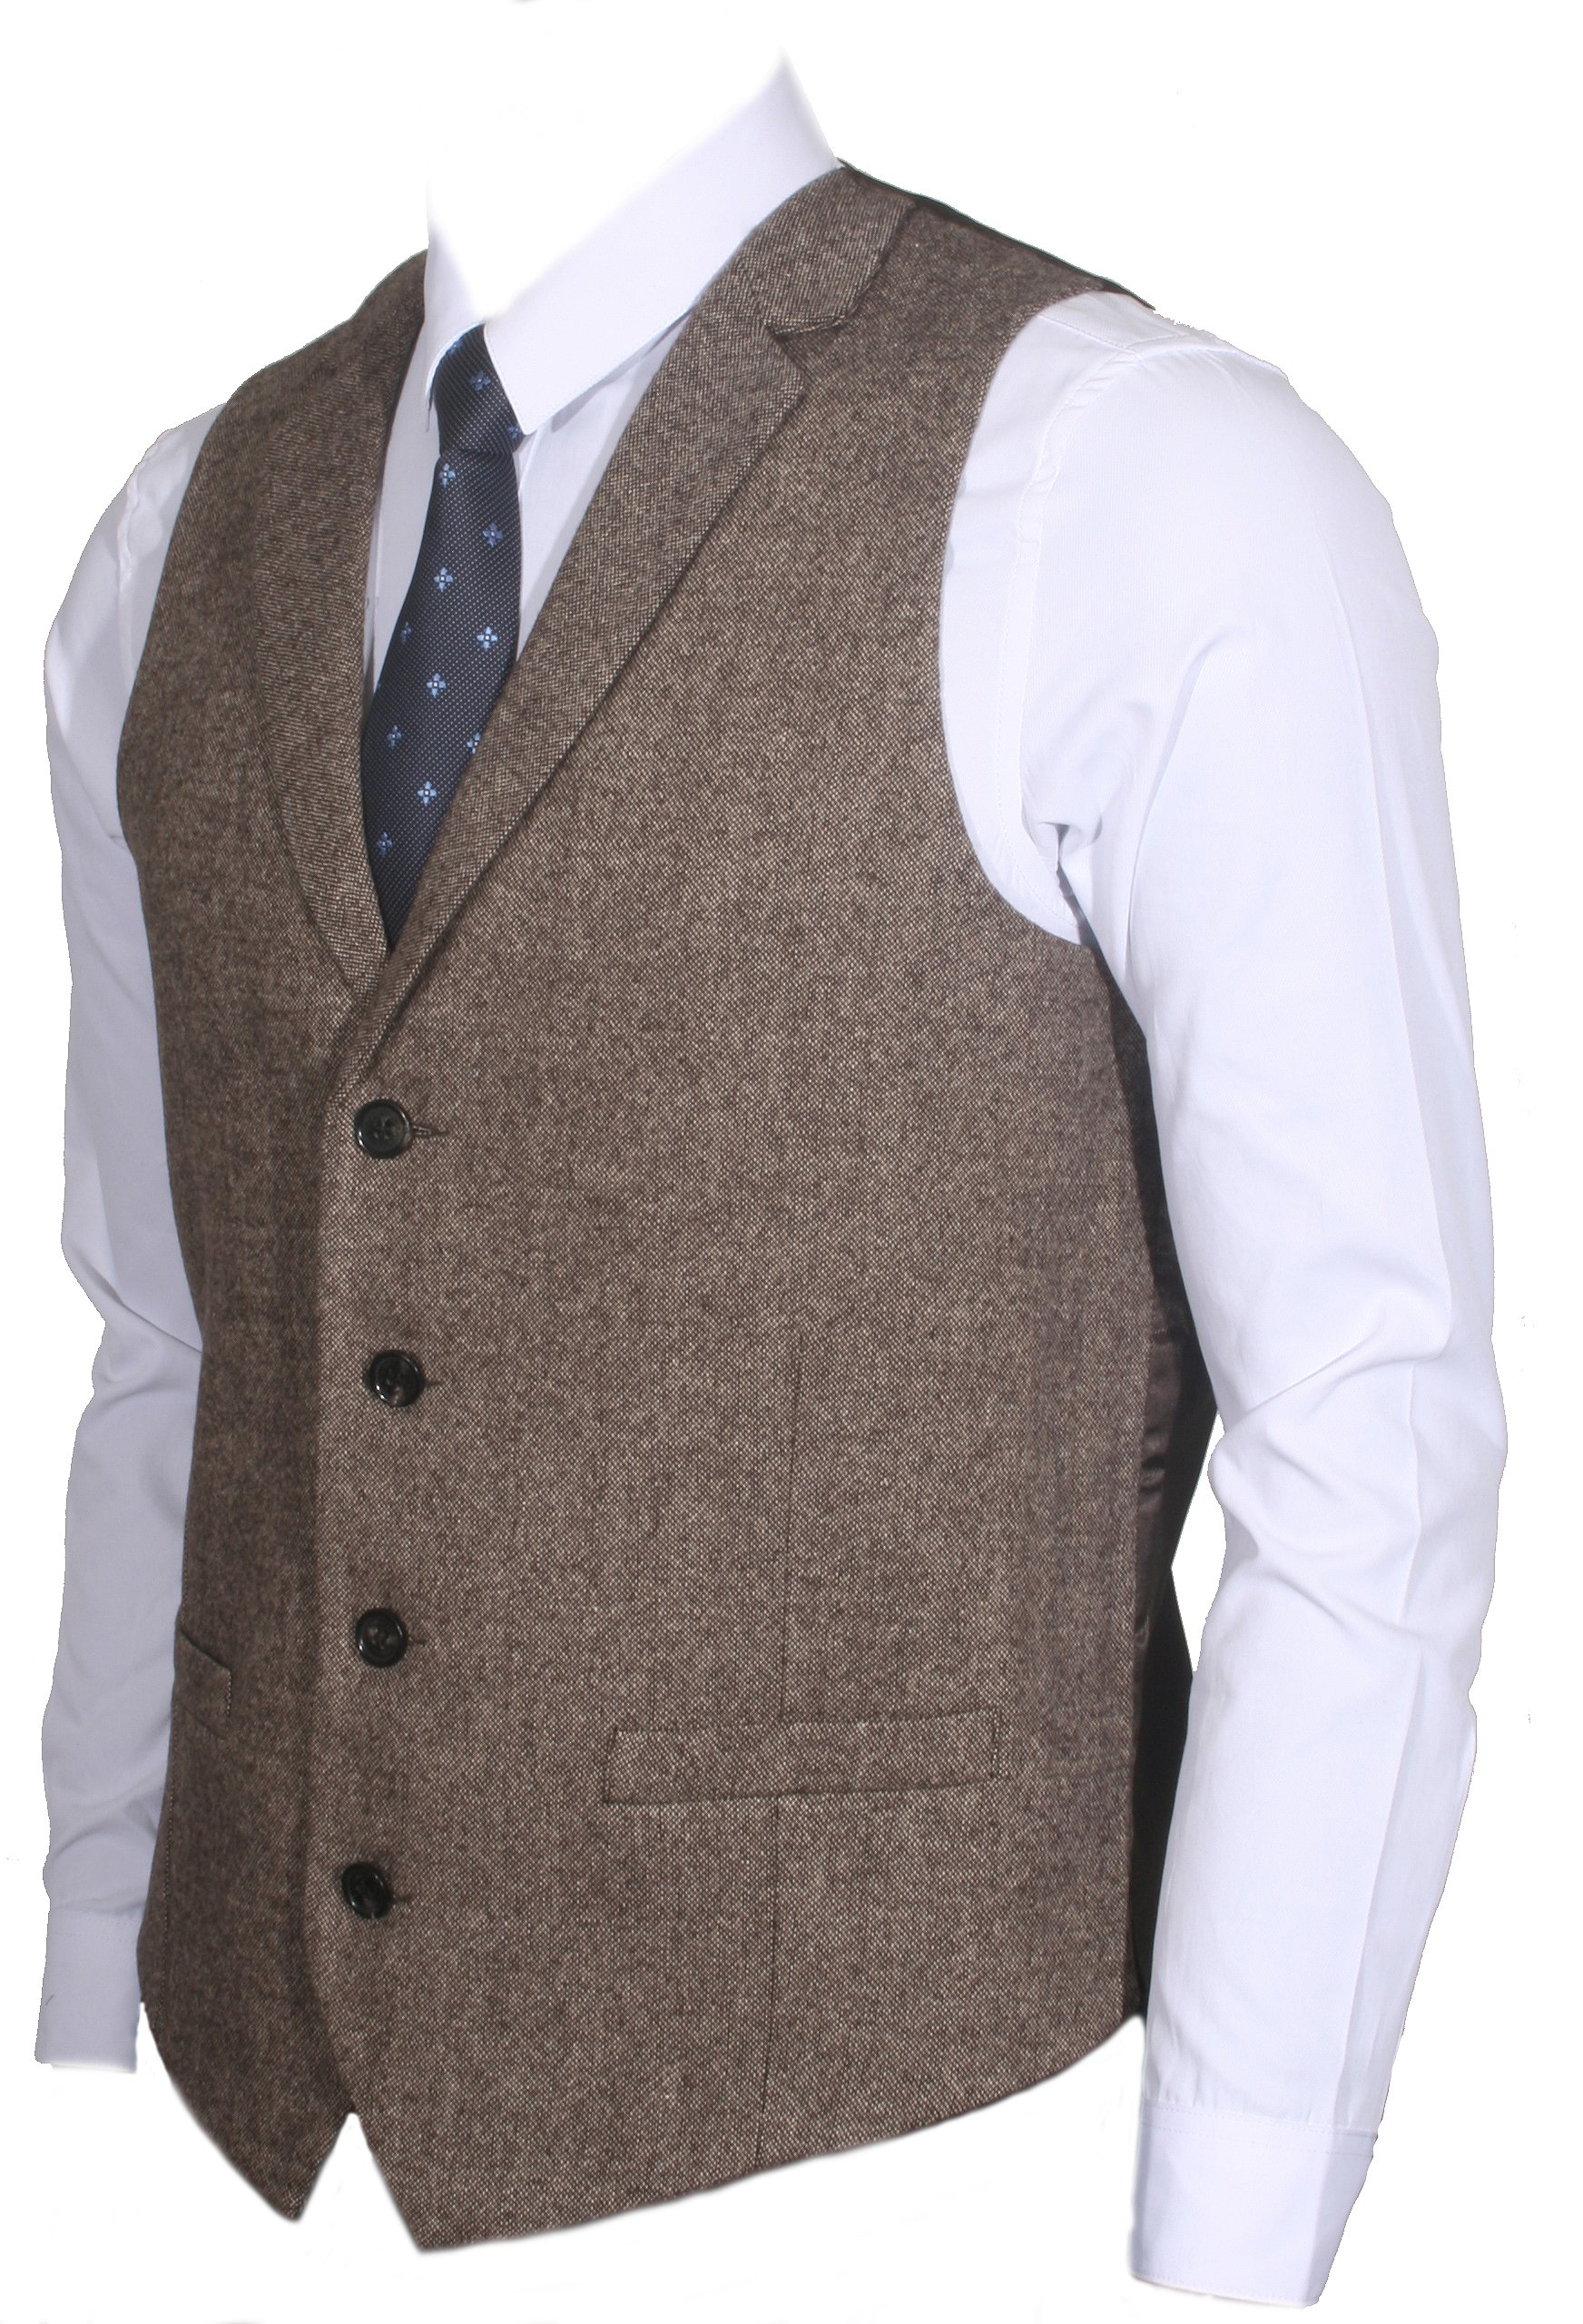 Ruth&Boaz 2Pockets 4Buttons Wool Herringbone/Tweed Tailored Collar Suit Vest (XXL, Tweed brown)